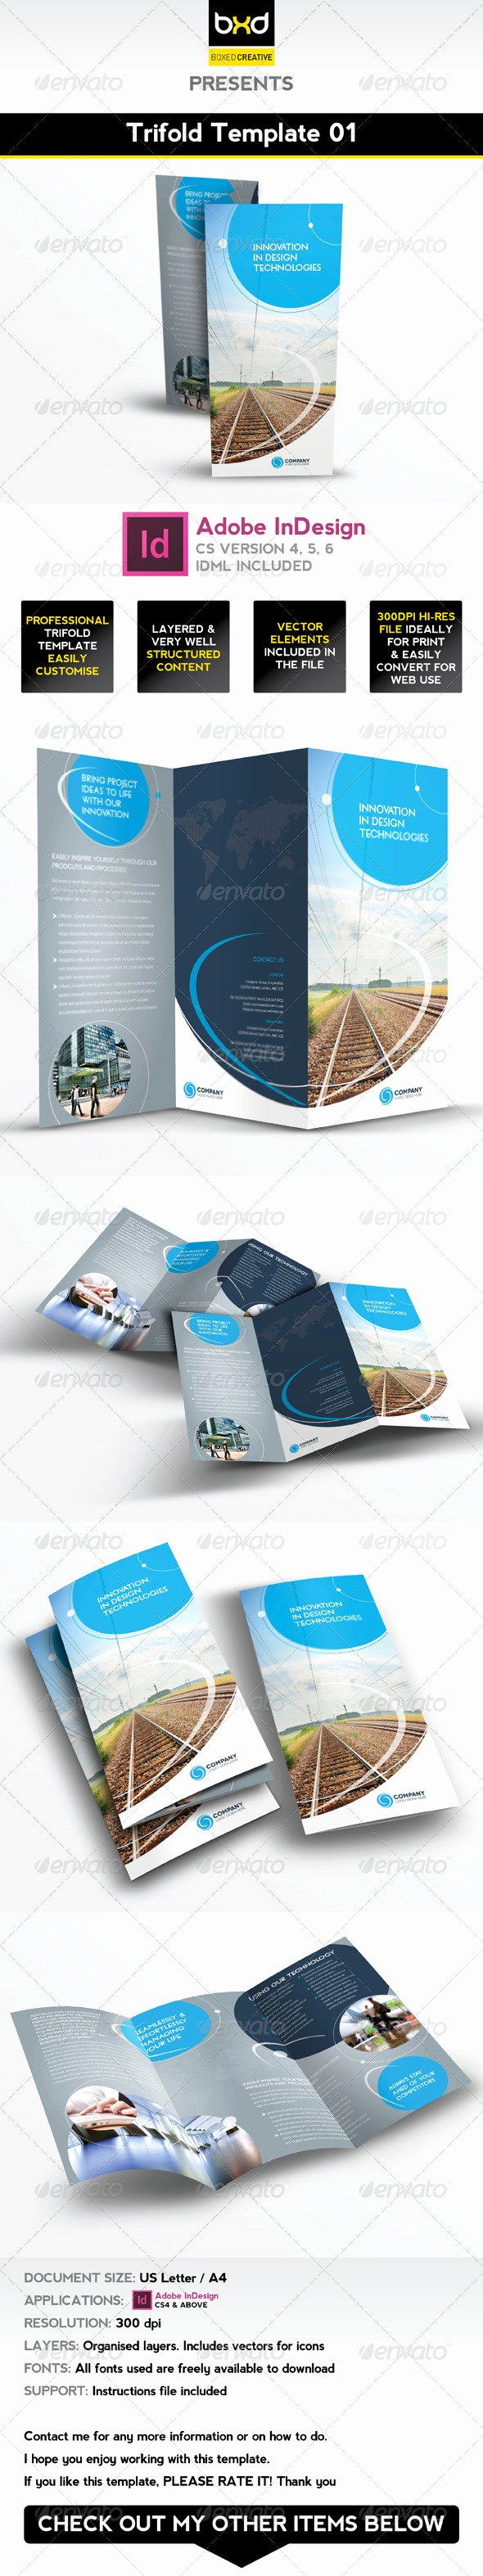 Indesign Trifold Template Free Elegant Trifold Brochure Template 01 Indesign Layout